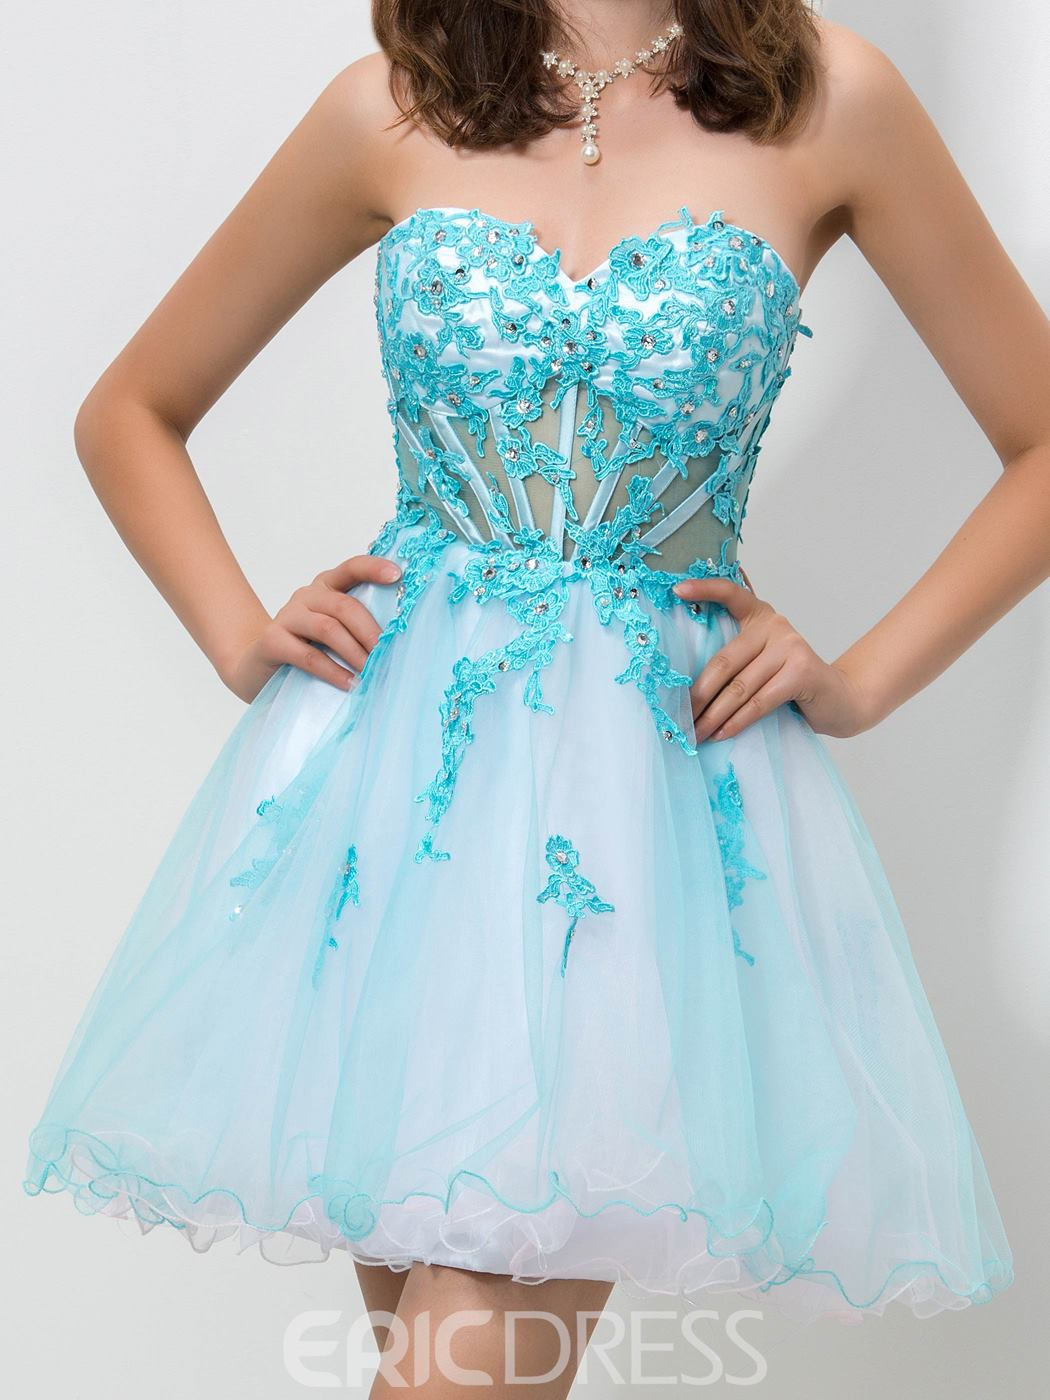 Ericdress Sweetheart Corset Appliques Homecoming Dress